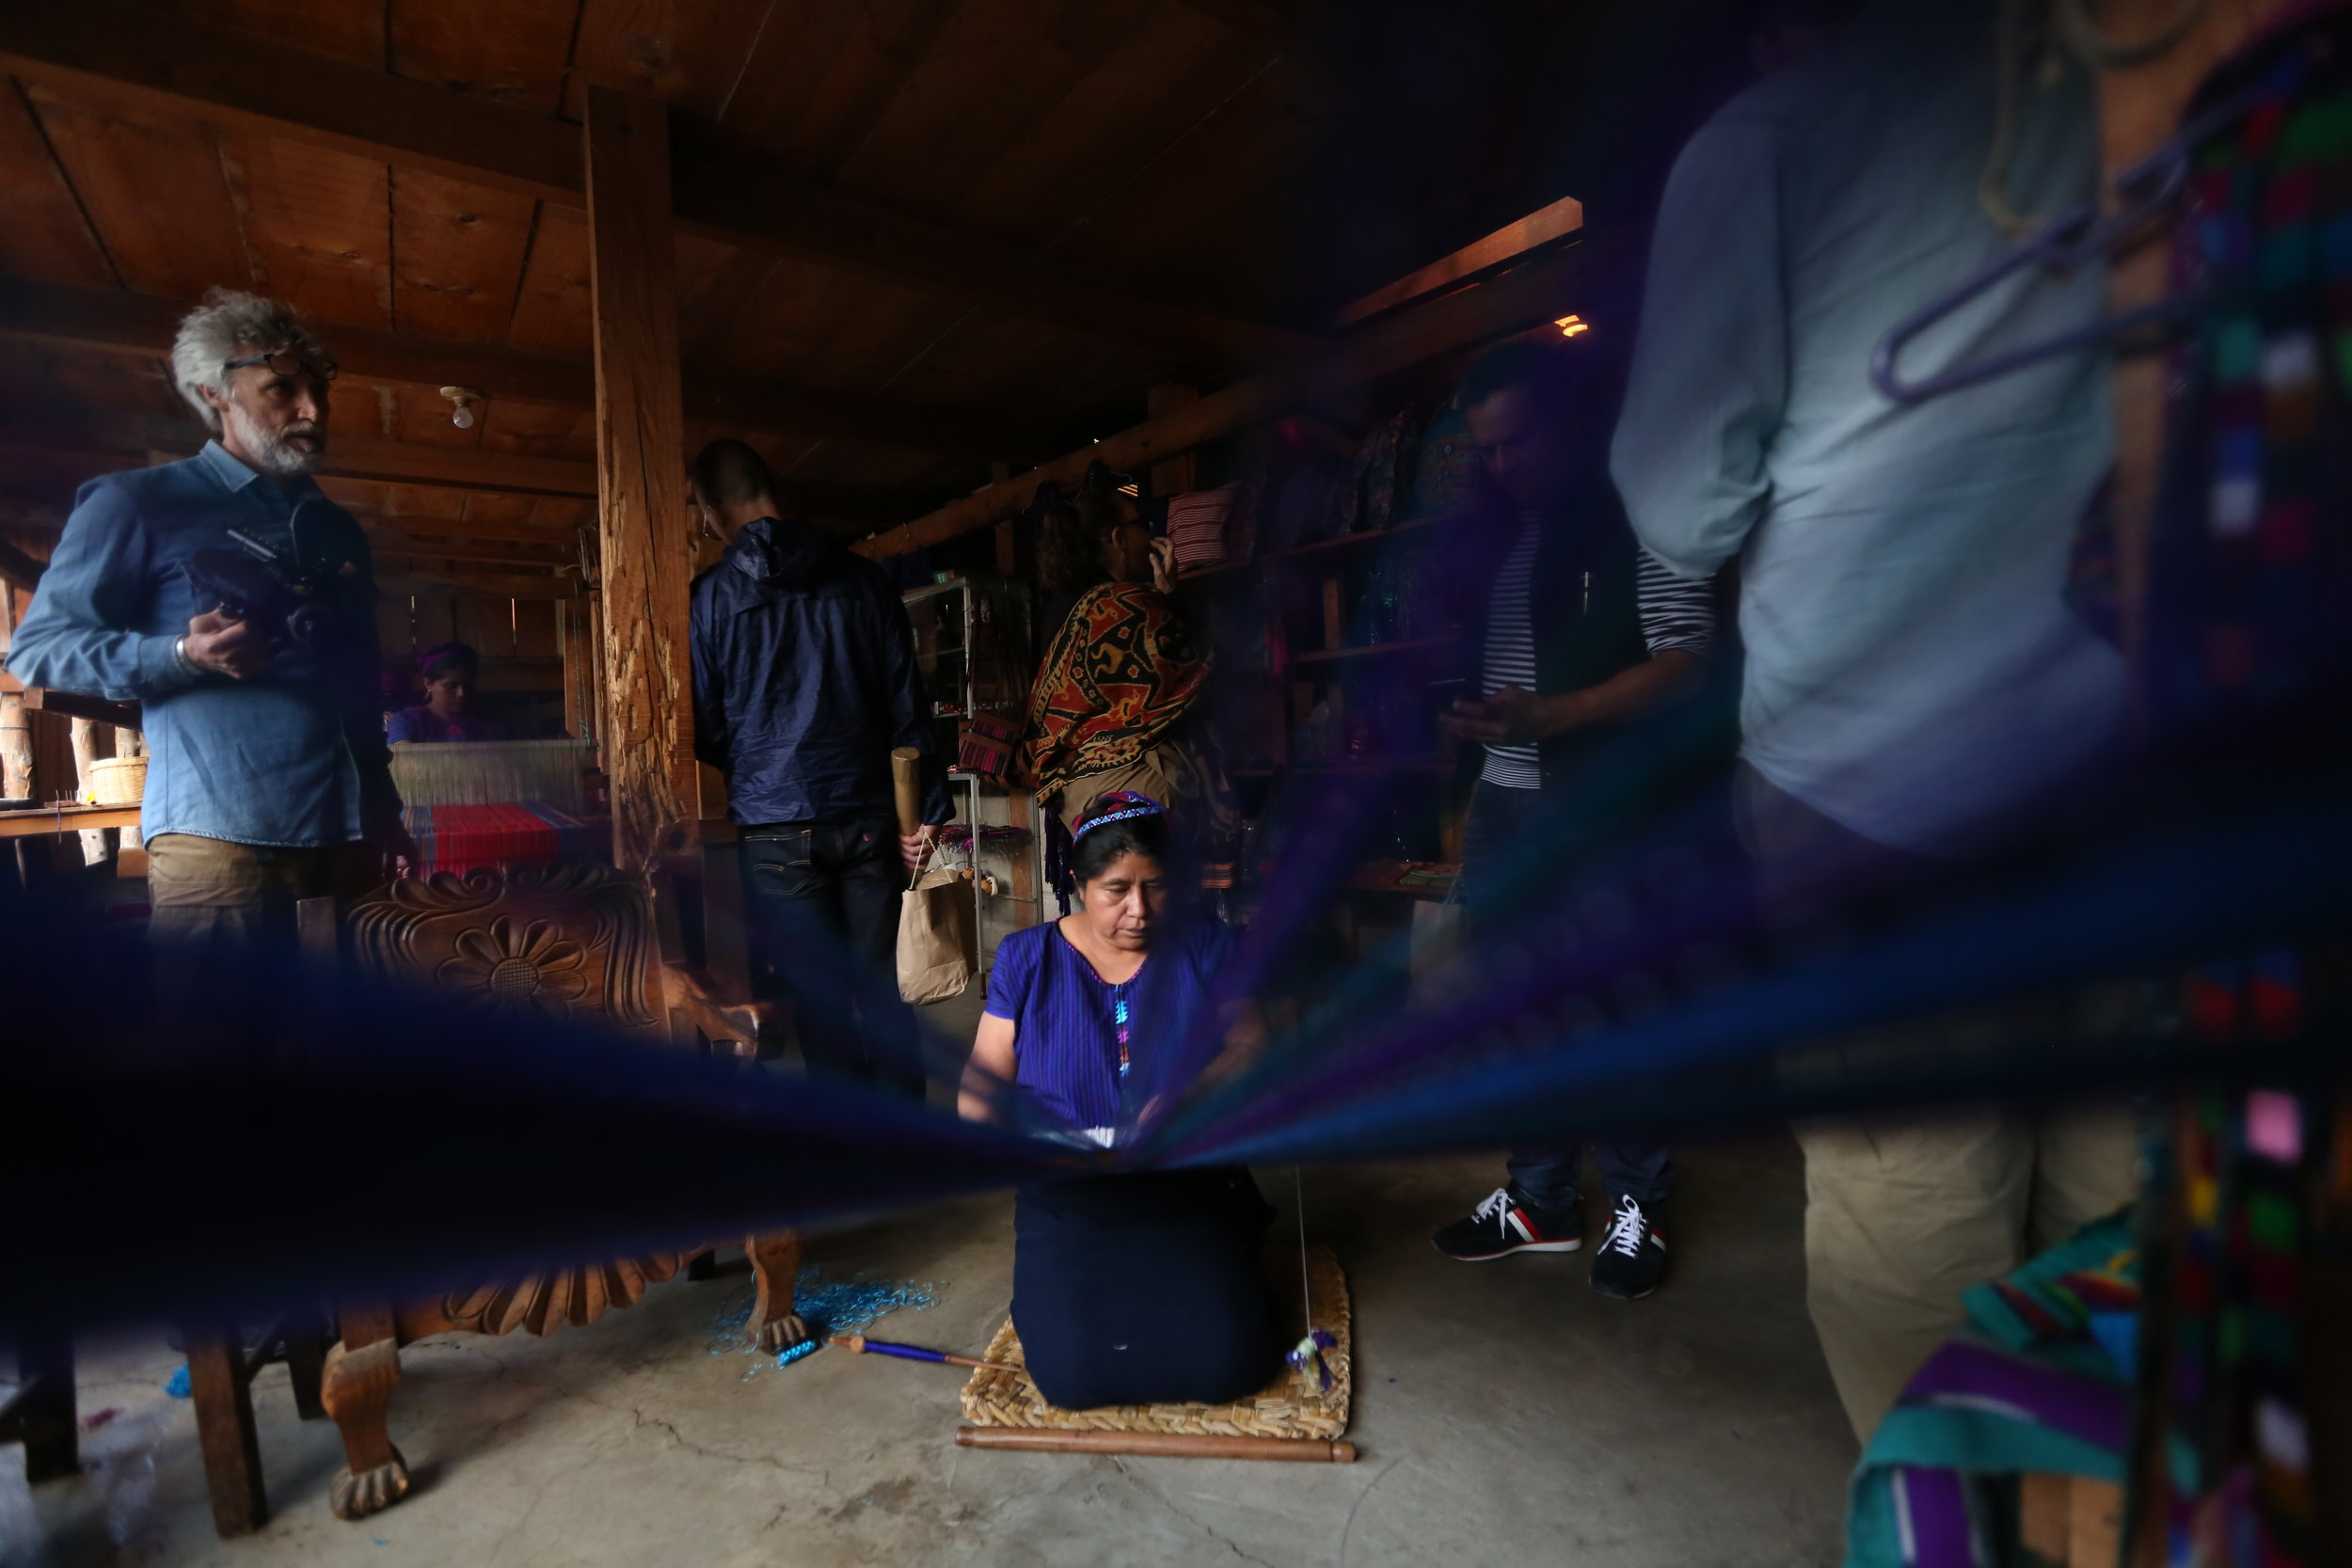 Guatemala is home to one million artisans.